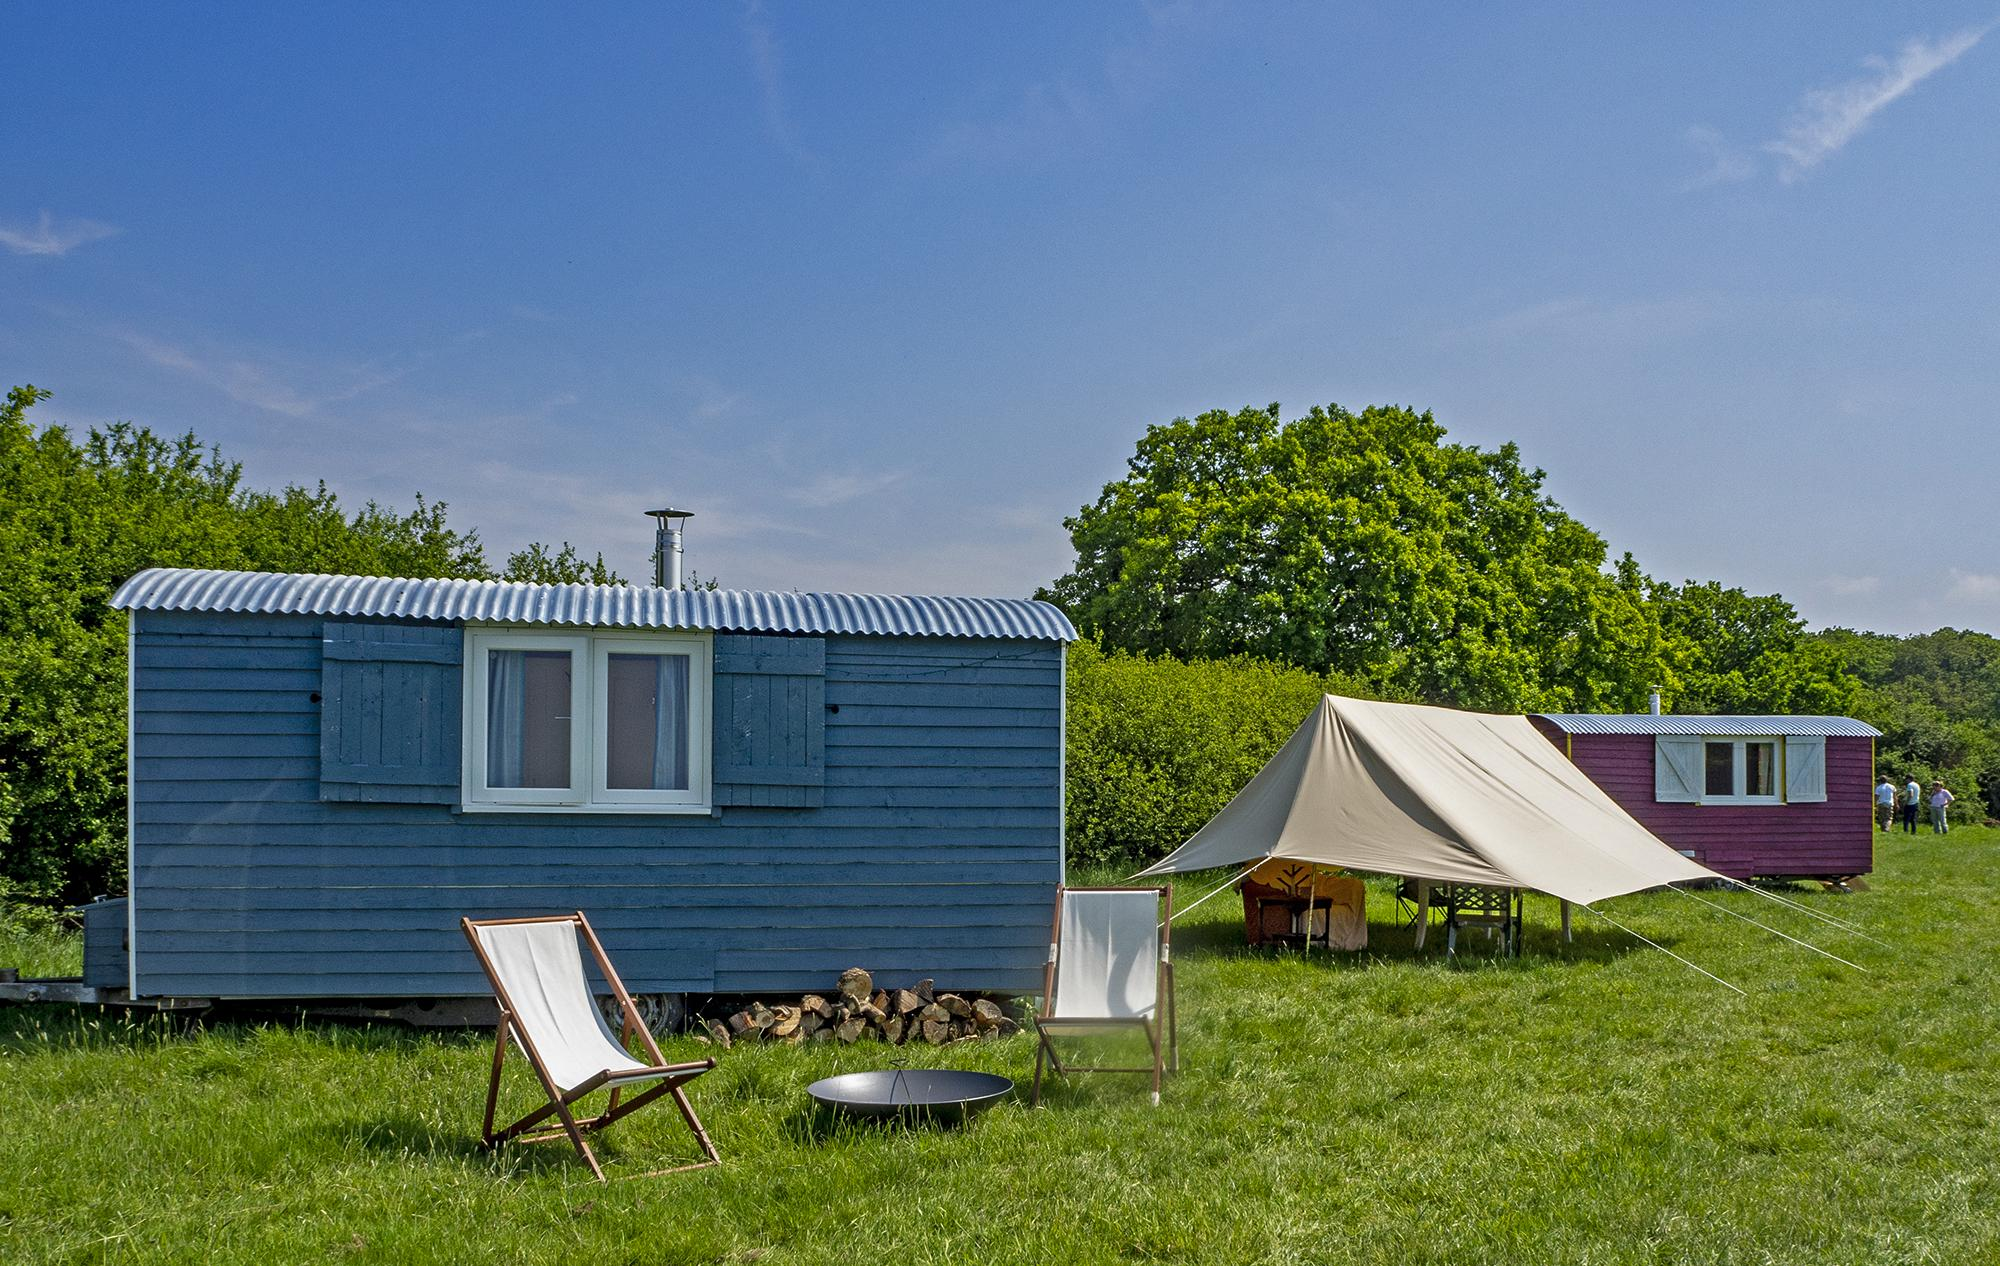 Glamping in South East England holidays at I Love This Campsite